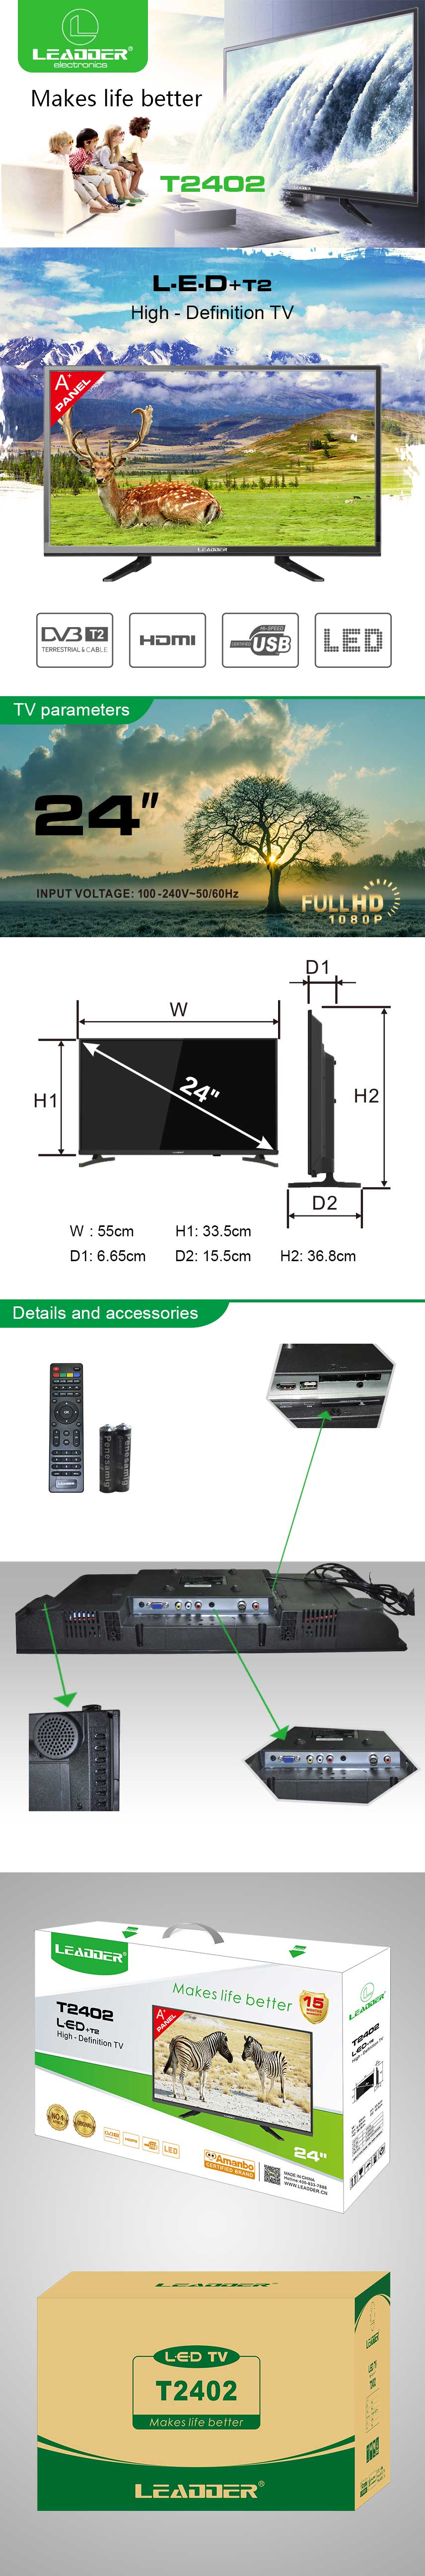 LEADDER LED TV 24 inches High quality surround sound T2402 high-definition tv DVB-T2 terrestrial&cable